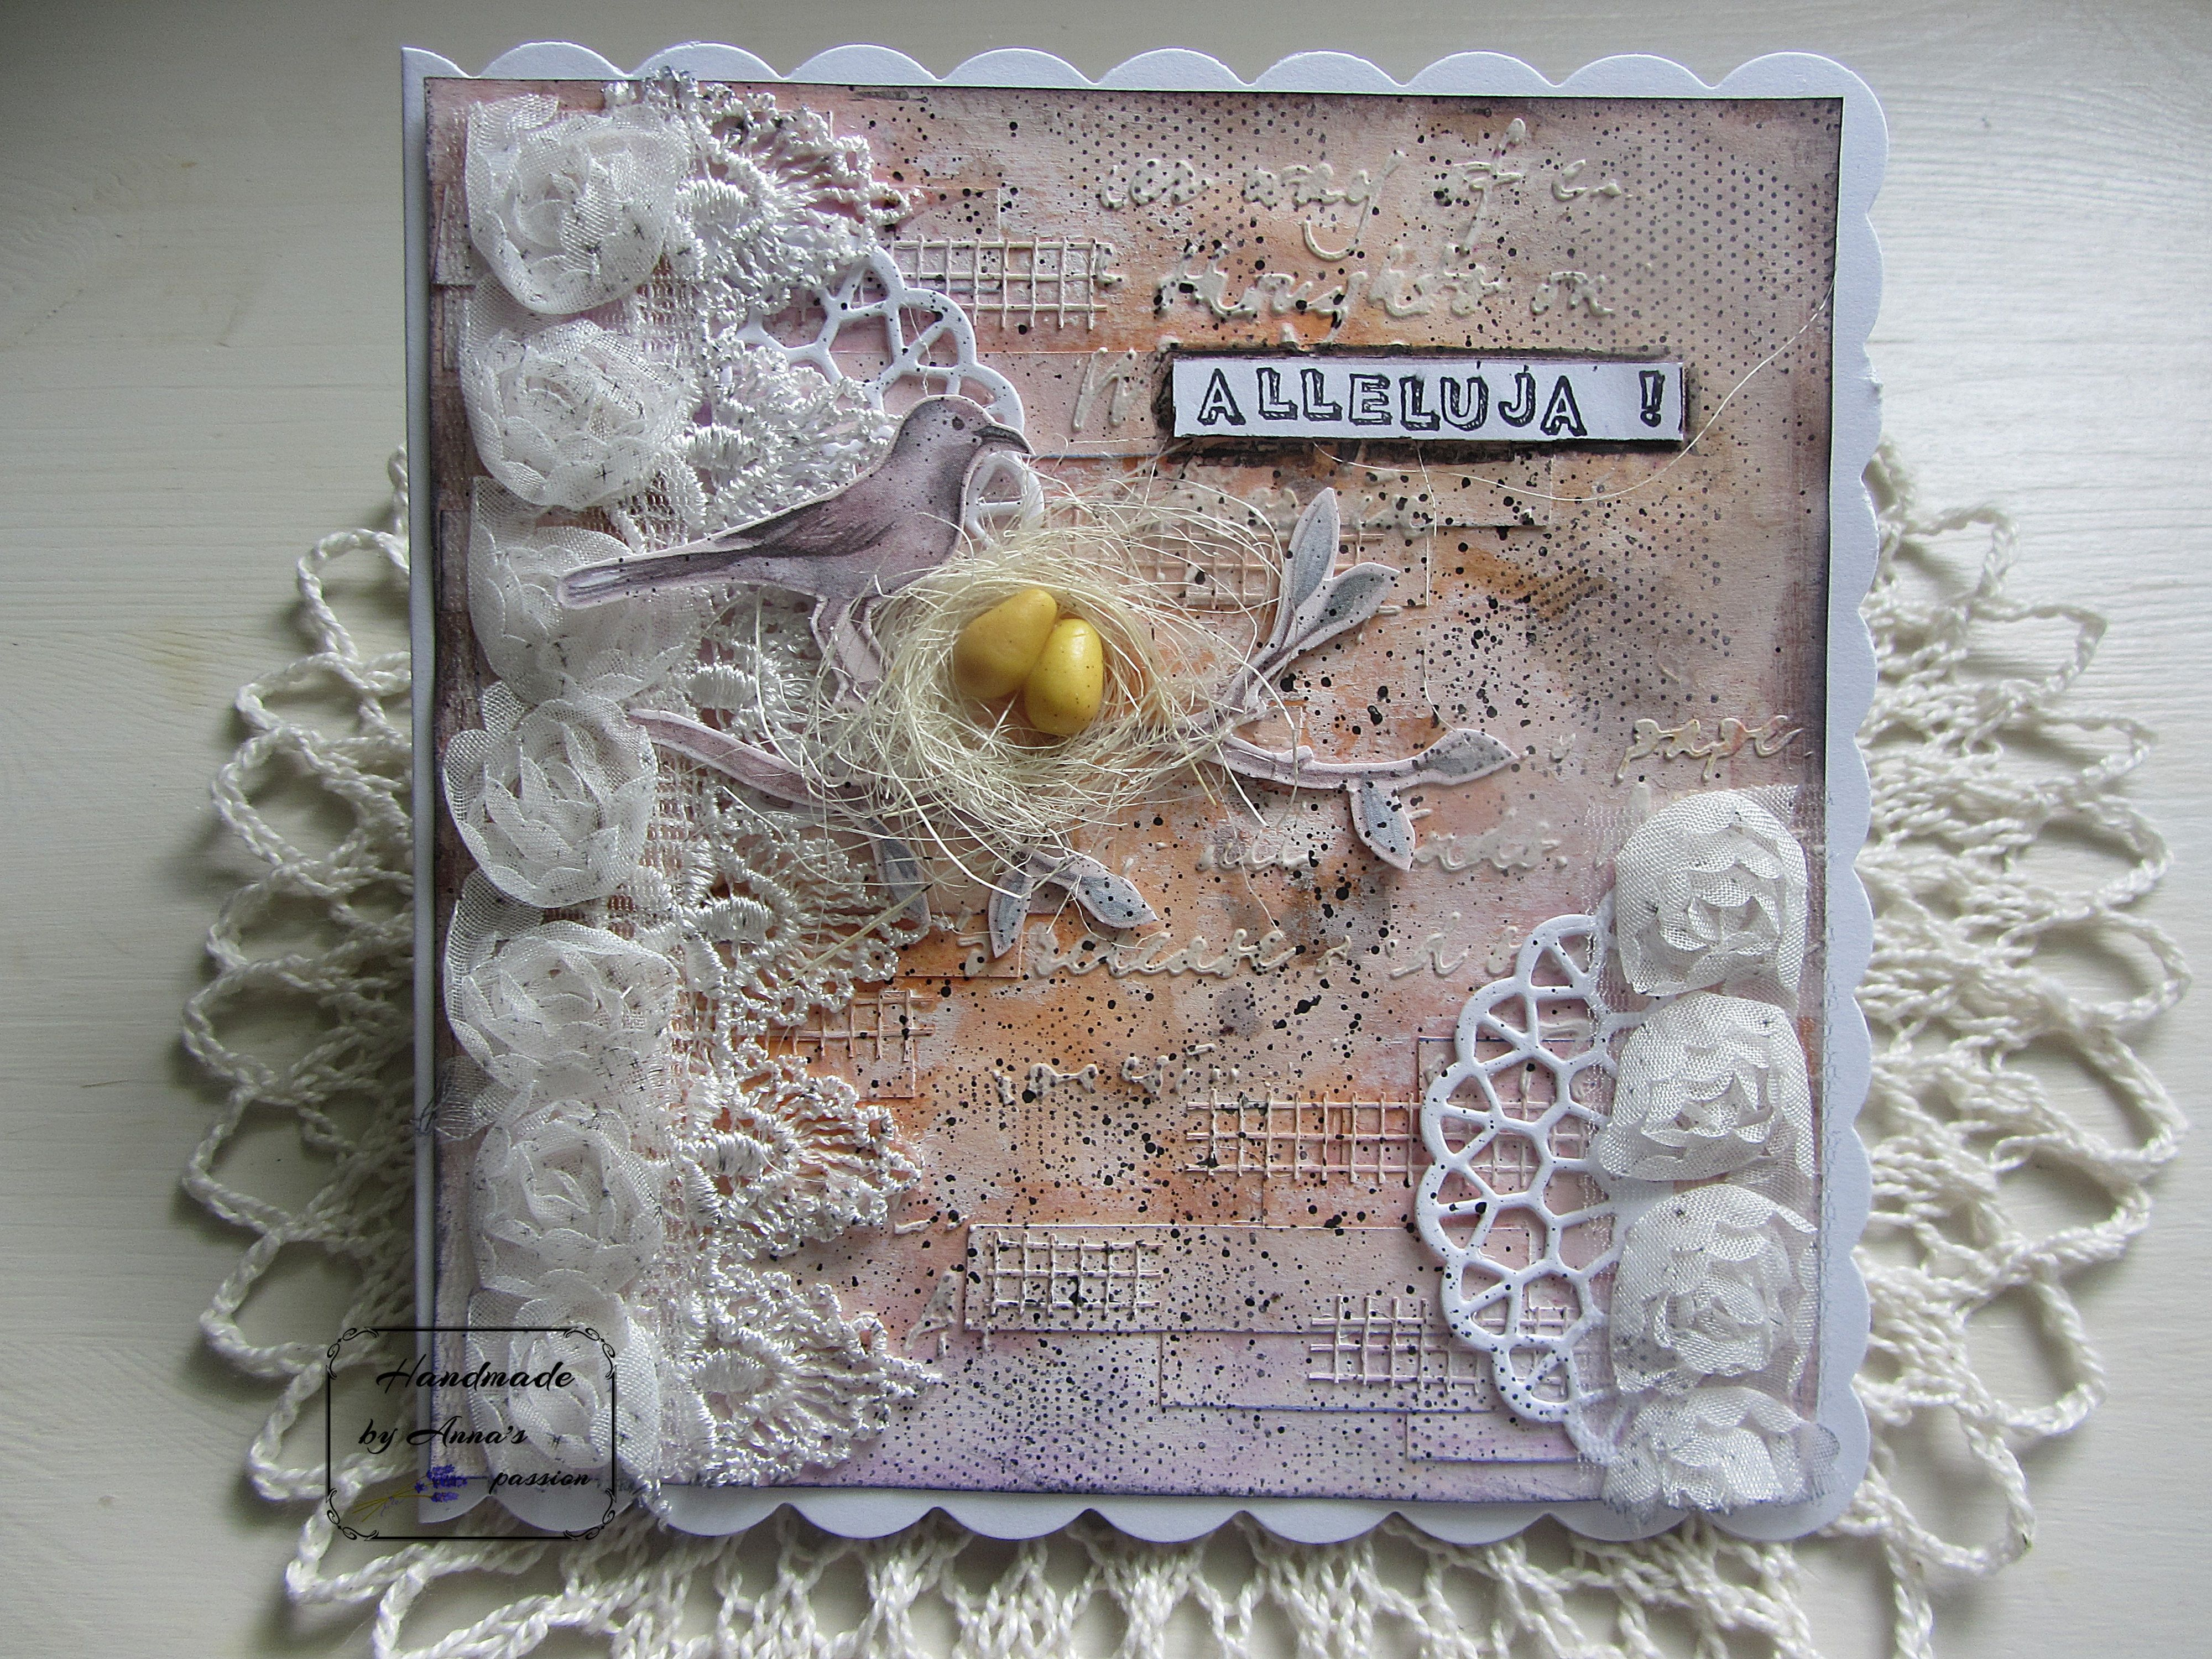 Mixed Media Easter card  Mediowa kartka Wielkanocna #handmade #card #mixedmedia #mixedmediaart #cardmaking #gesso #meshtape #texturepaste #tcw #thecraftersworkshop #tcwstencillove #lindysstampgang #lindys #lace #tackyglue #diecut #doily #fussycut #49andmarket #naturalsisal #fimo #eggs #archivalink #kaisercraft #kaiser #tinydottystamp #blackacrylicpaint #splashes #papermania #ministampset